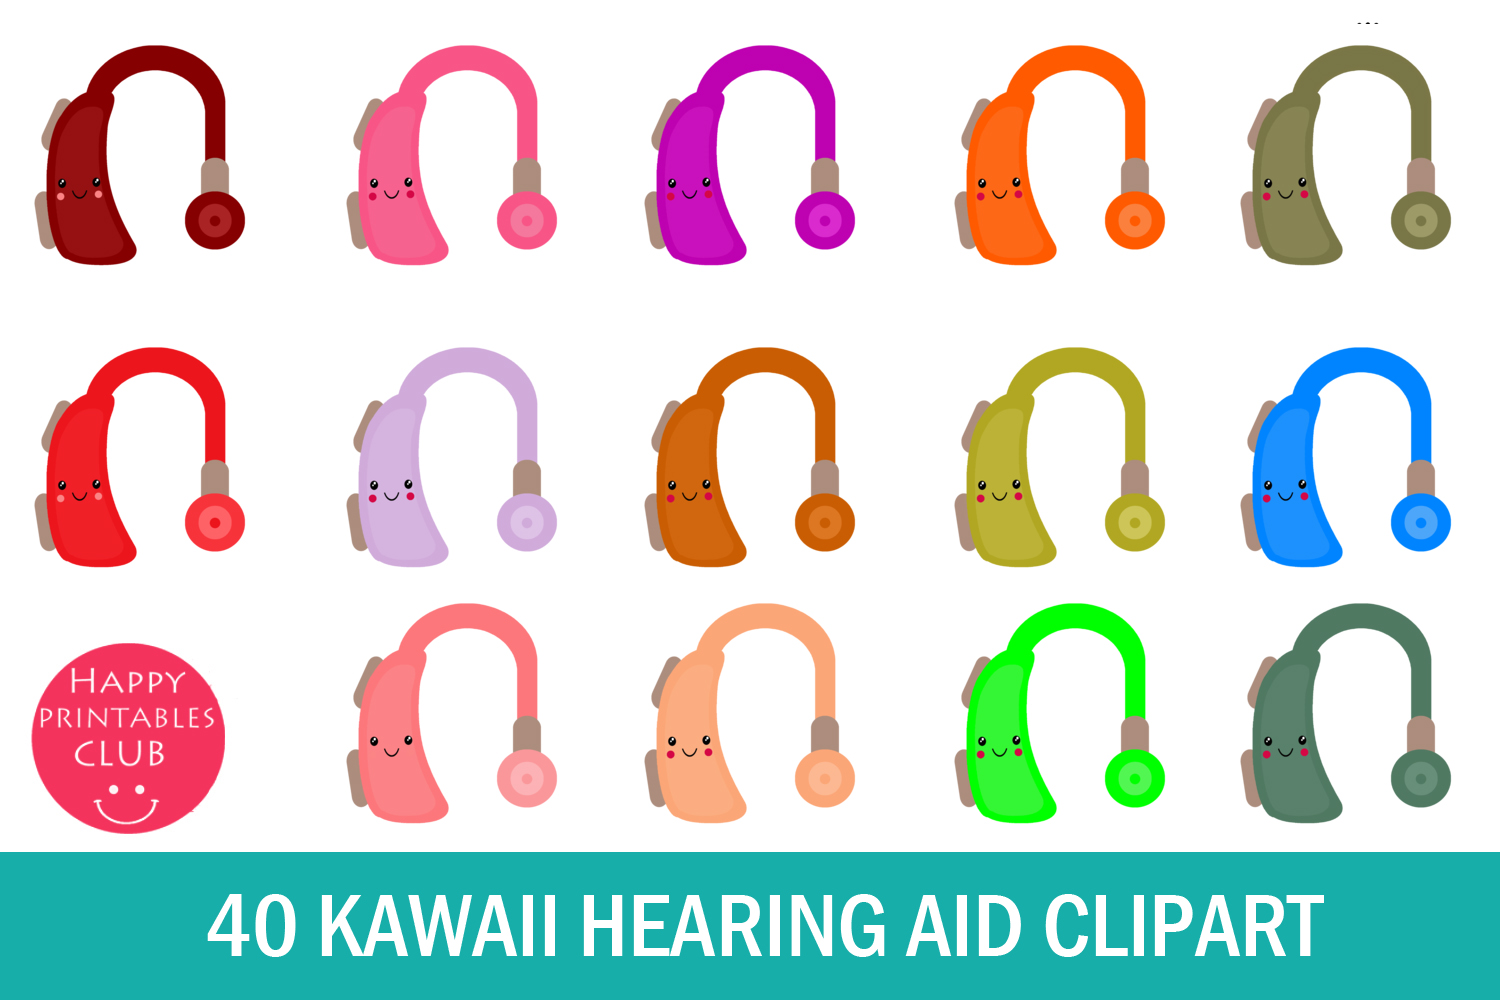 40 Kawaii Hearing Aid Clipart- Hearing Aid Clipart Images example image 1